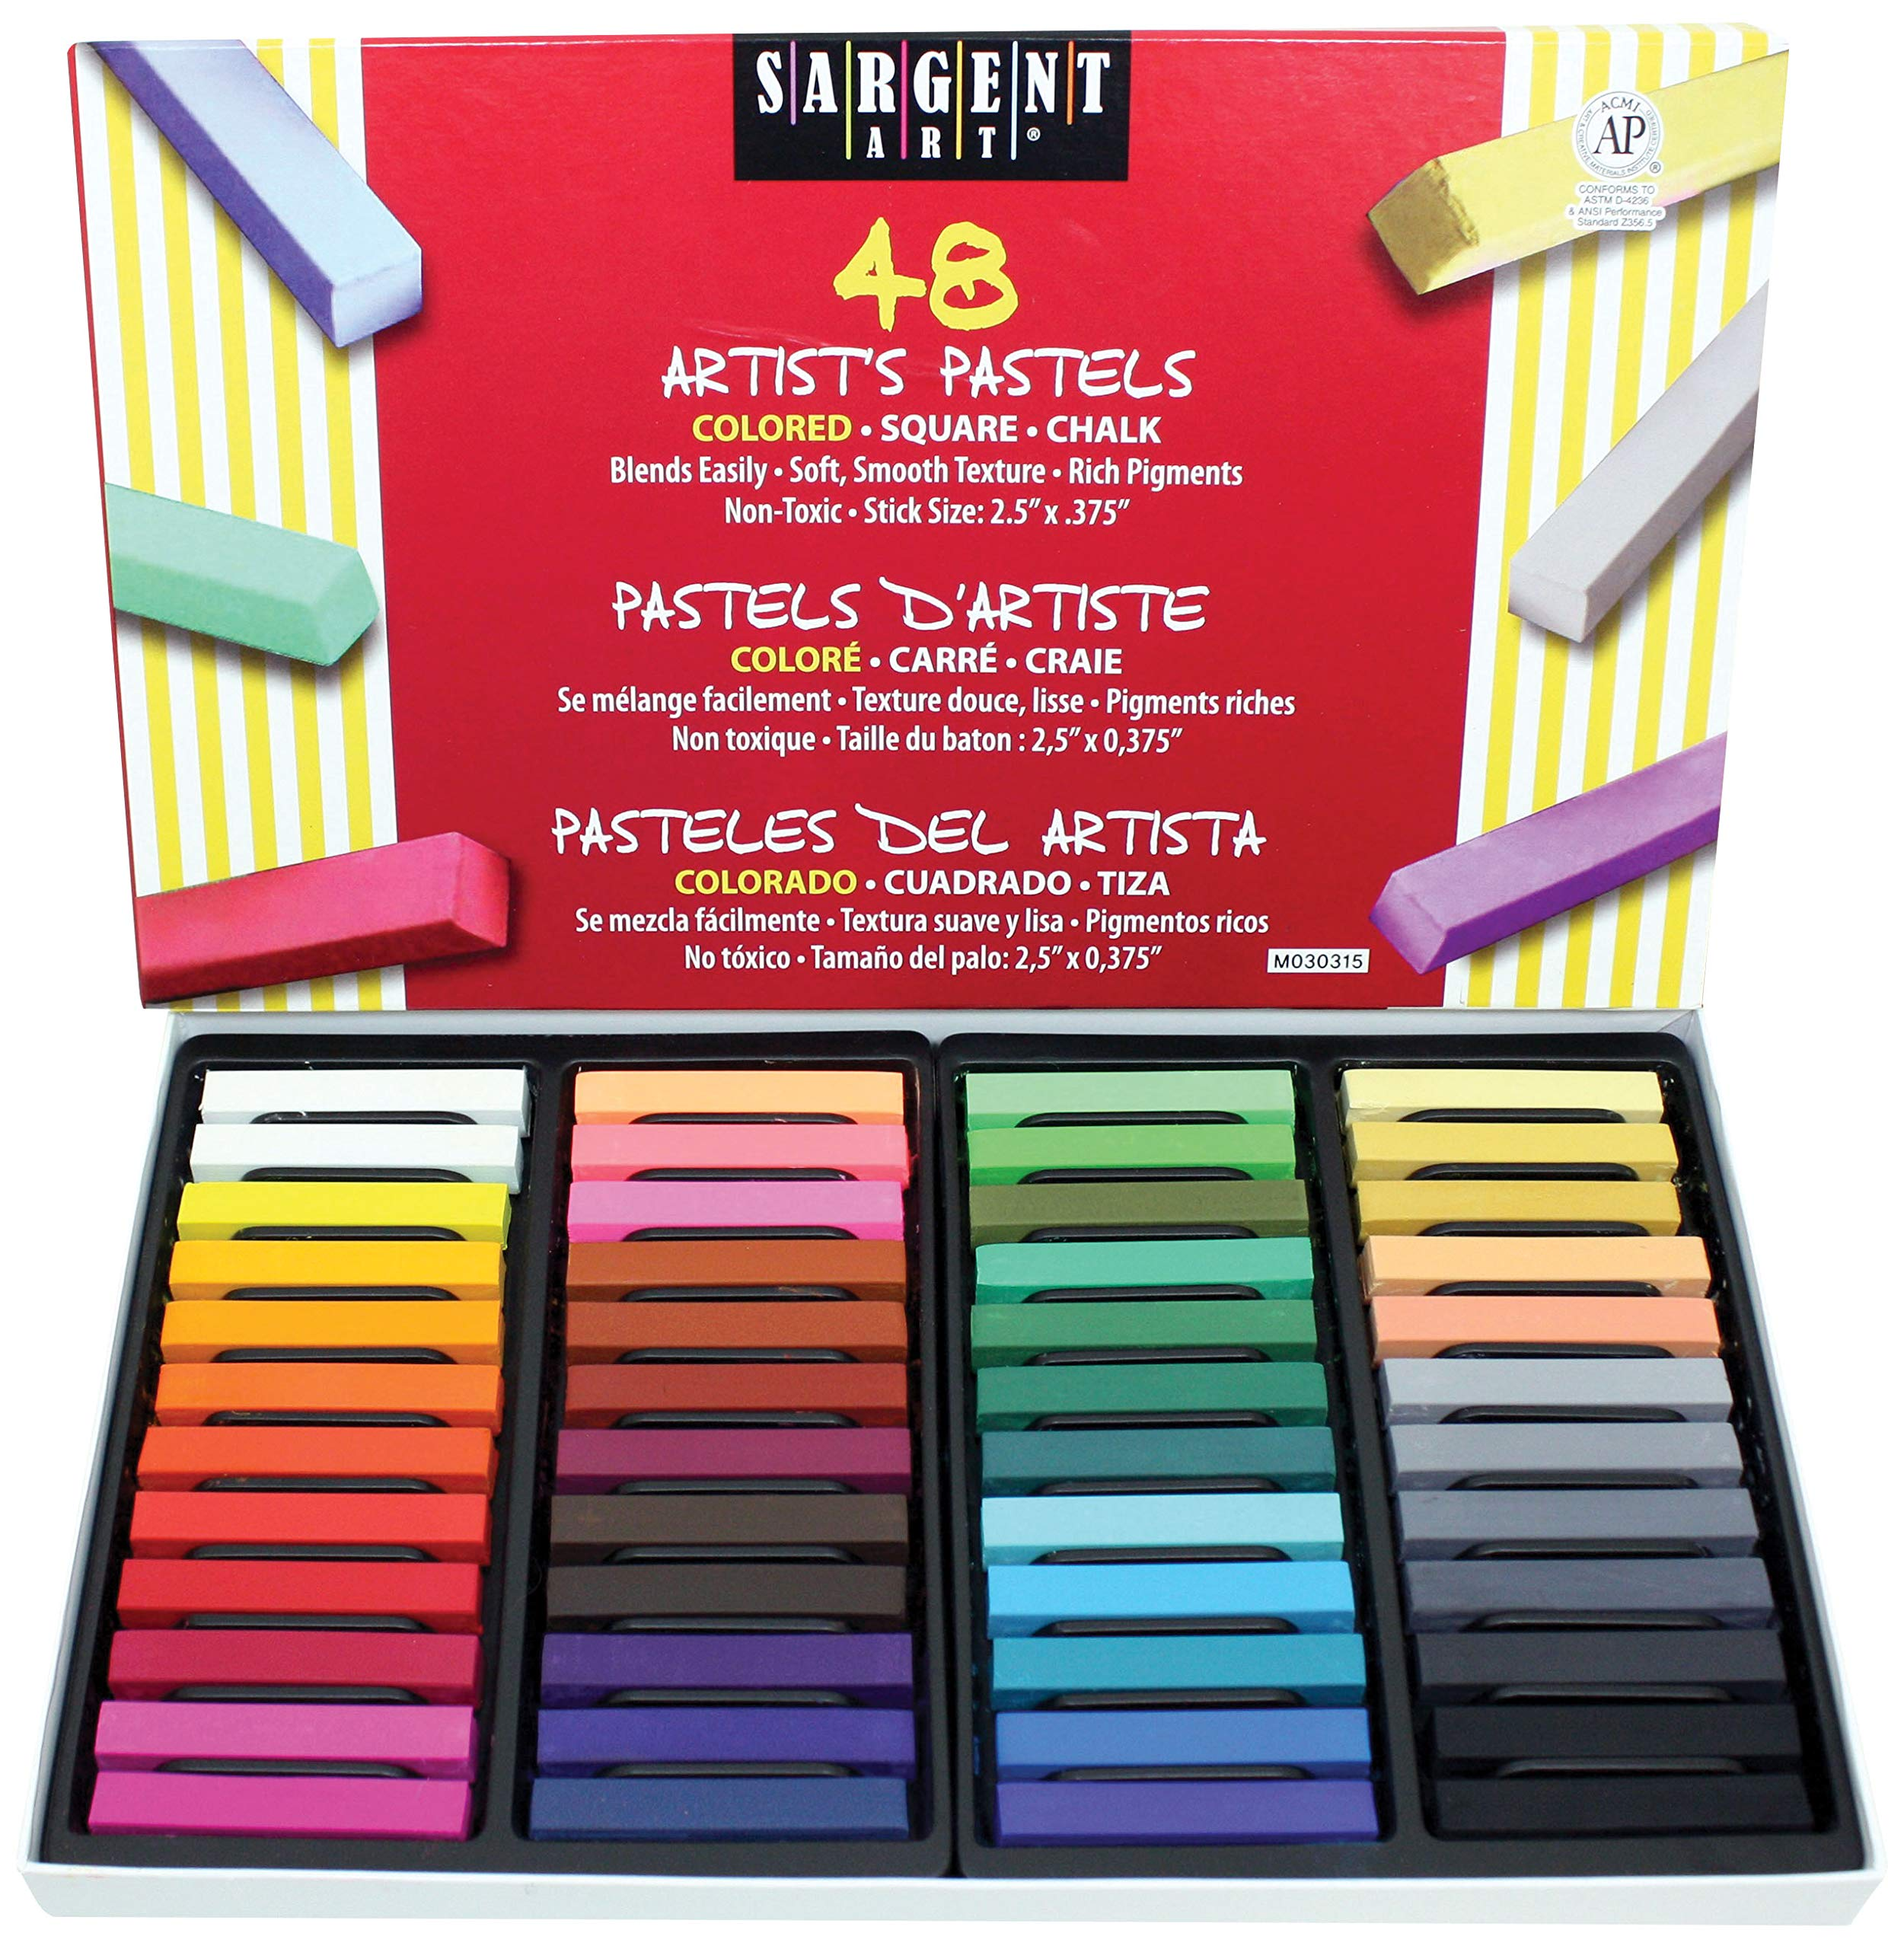 Sargent Art 22-4148 Colored Square Chalk Pastels, 48 Count (Pack of 4) by Sargent Art